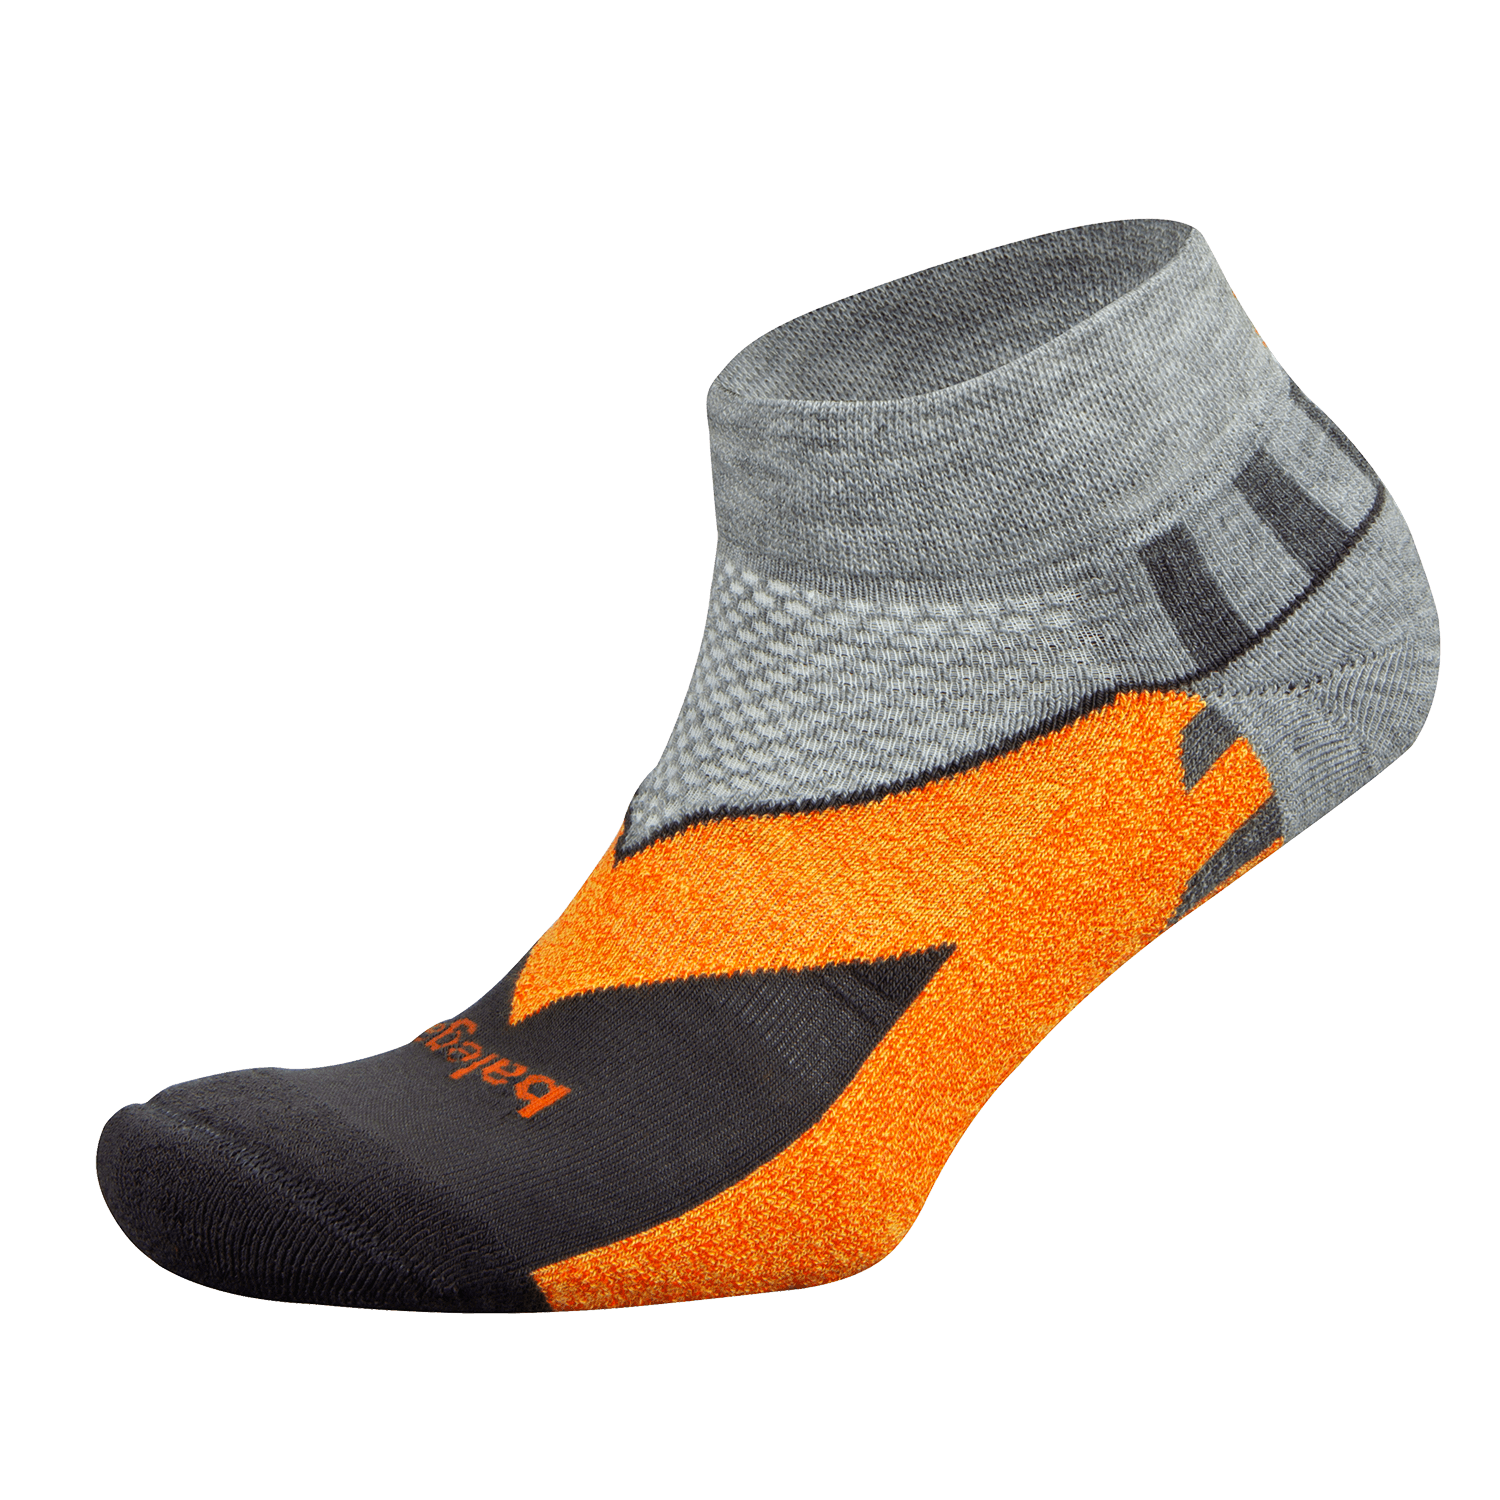 Enduro Low Cut in Carbon/Grey